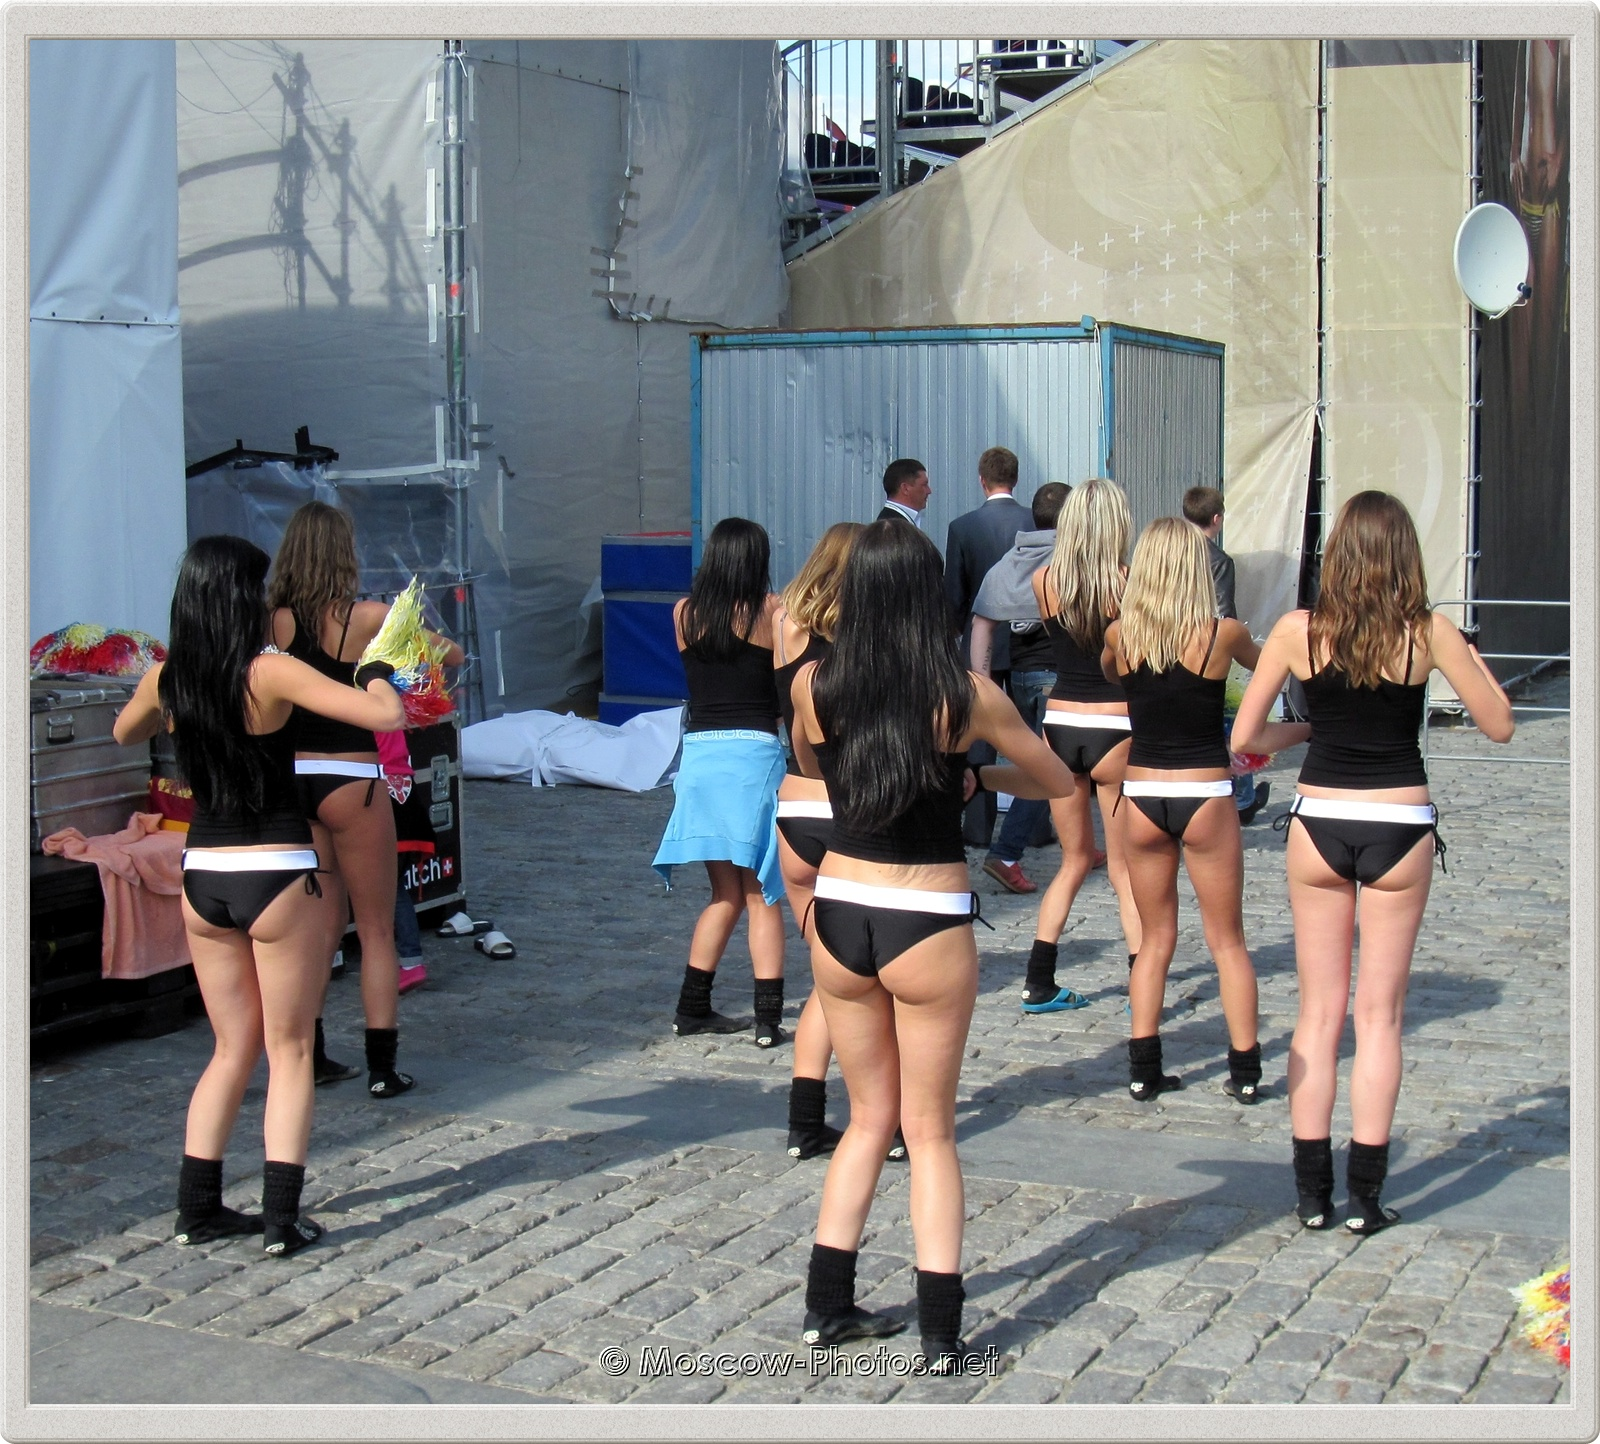 Beach Volleyball Cheerleaders before the show